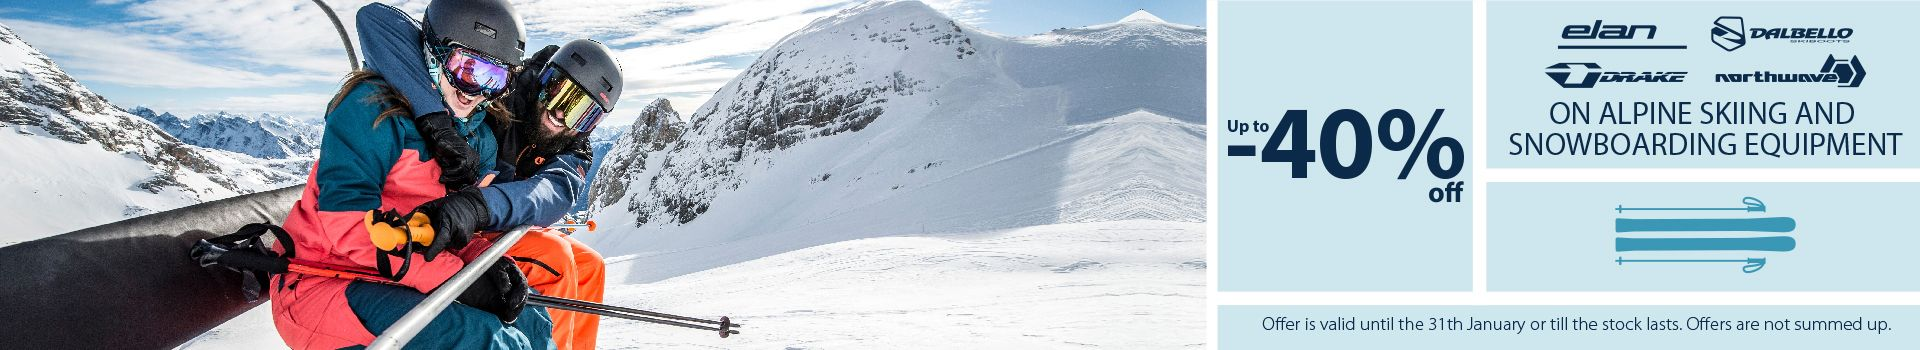 up-to-40-off-on-alpine-skiing-and-snb-equipment